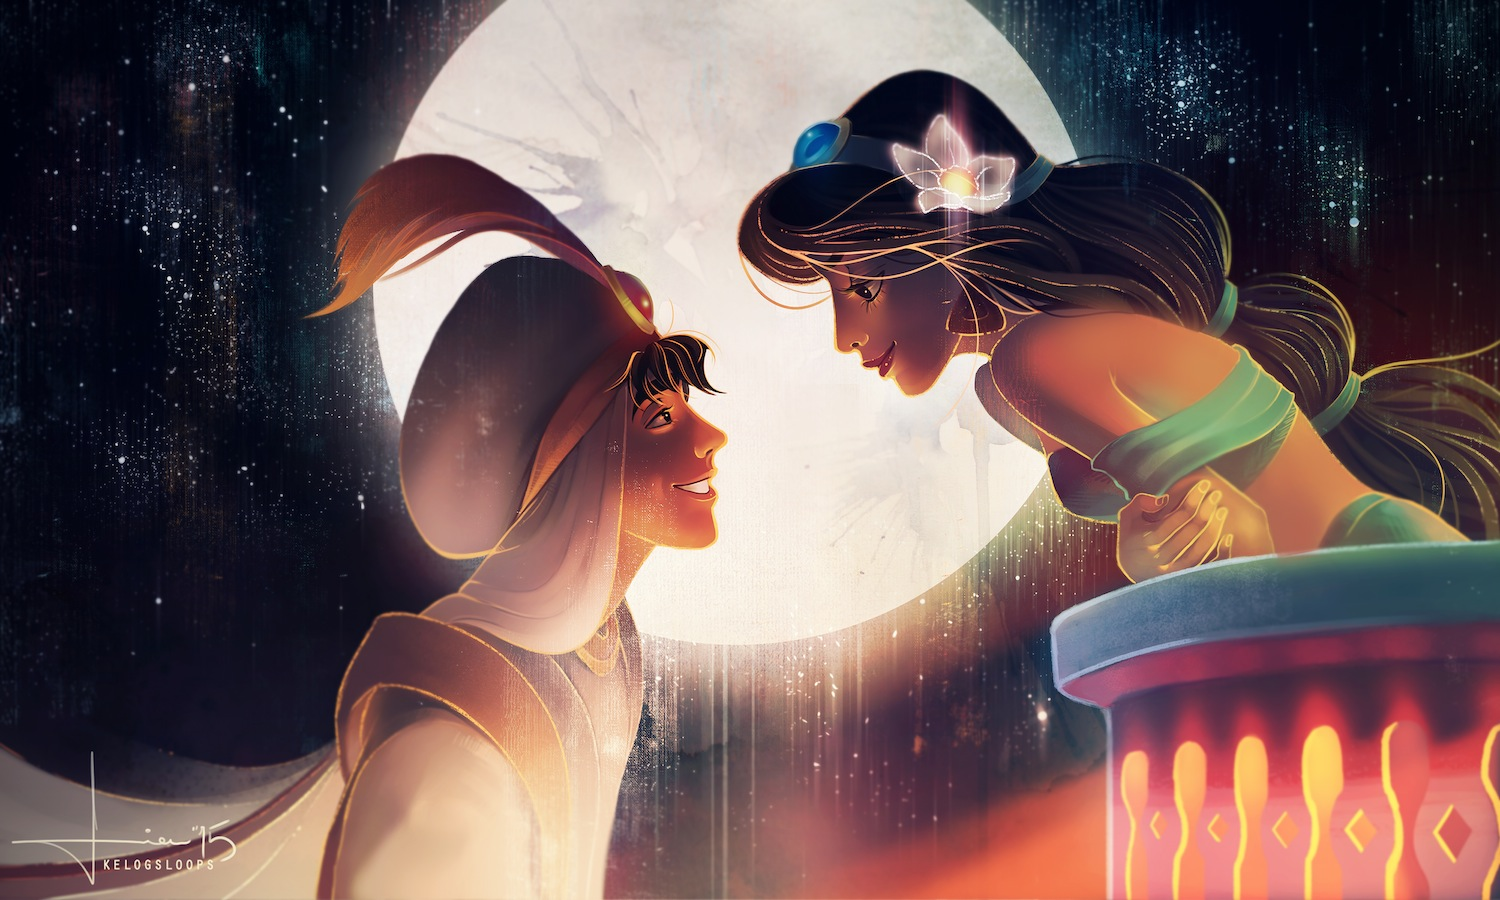 Artist Captures Disney's Most Romantic Scenes - The GCE